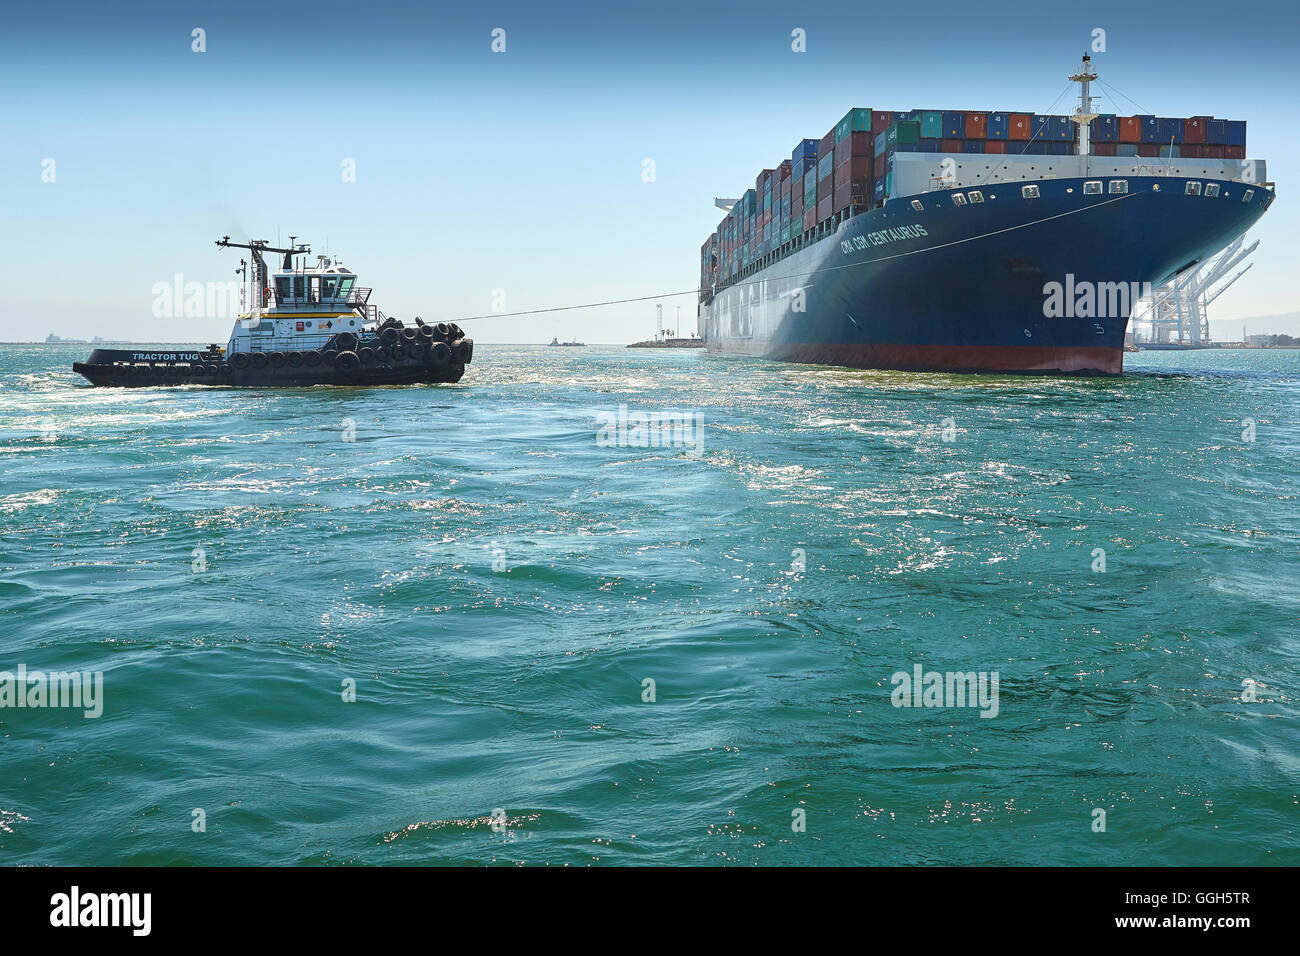 The Giant, CMA CGM Centaurus, Container Ship Is Manoeuvred Into Pier J At The Long Beach Container Terminal, California, - Stock Image